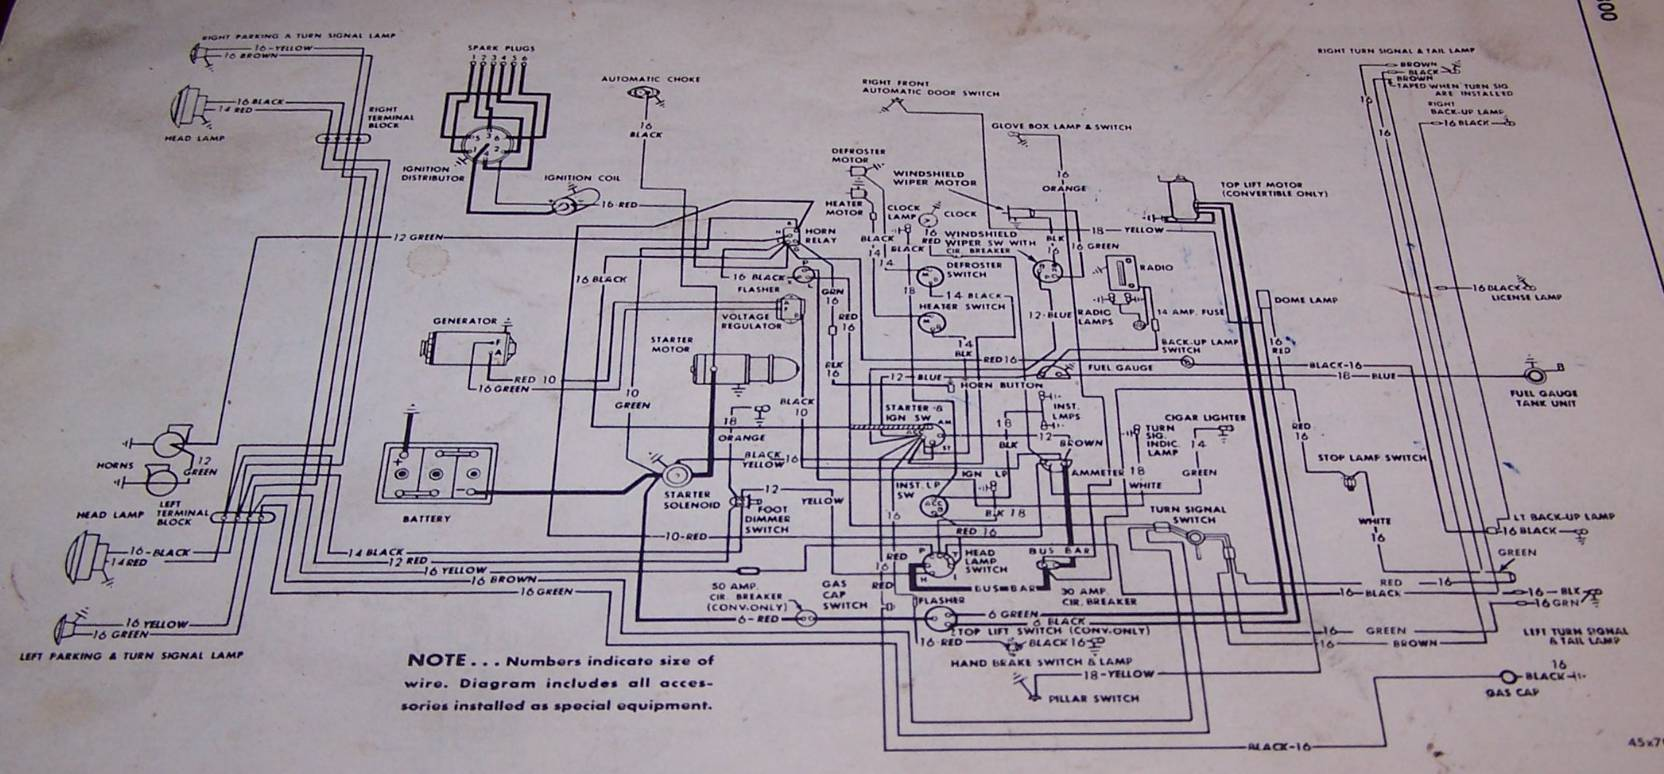 1950 Chrysler Wiring Diagram General Data 1955 Desoto Simple Rh 8 Mara Cujas De Chevrolet Chevy